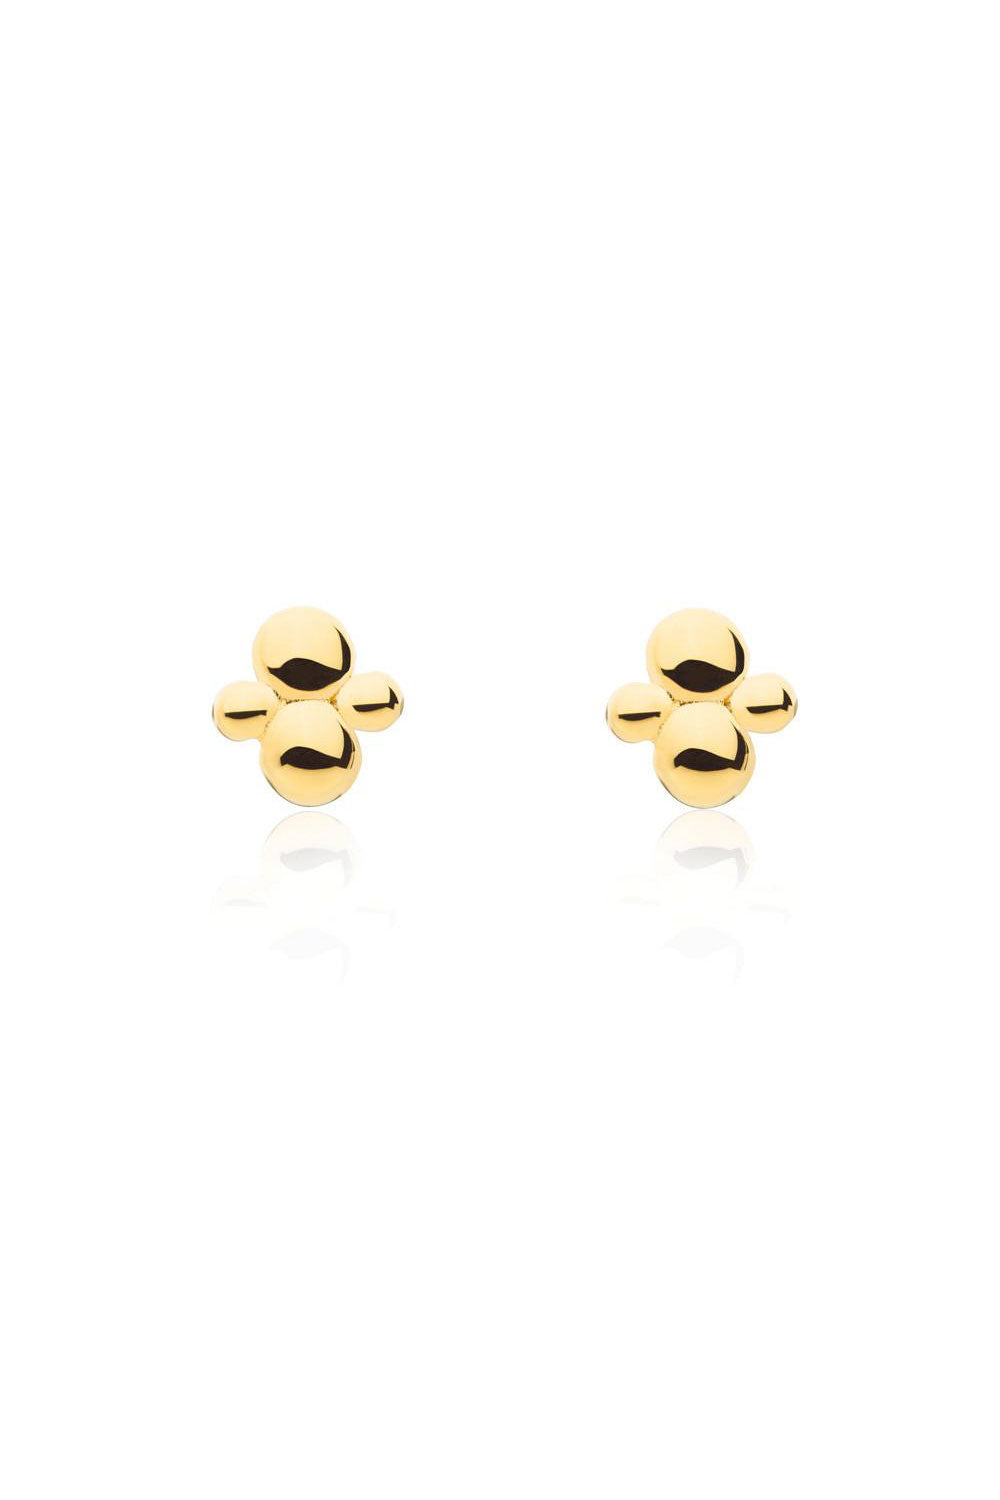 Cluster Stud Earrings Gold - Kabana Shop